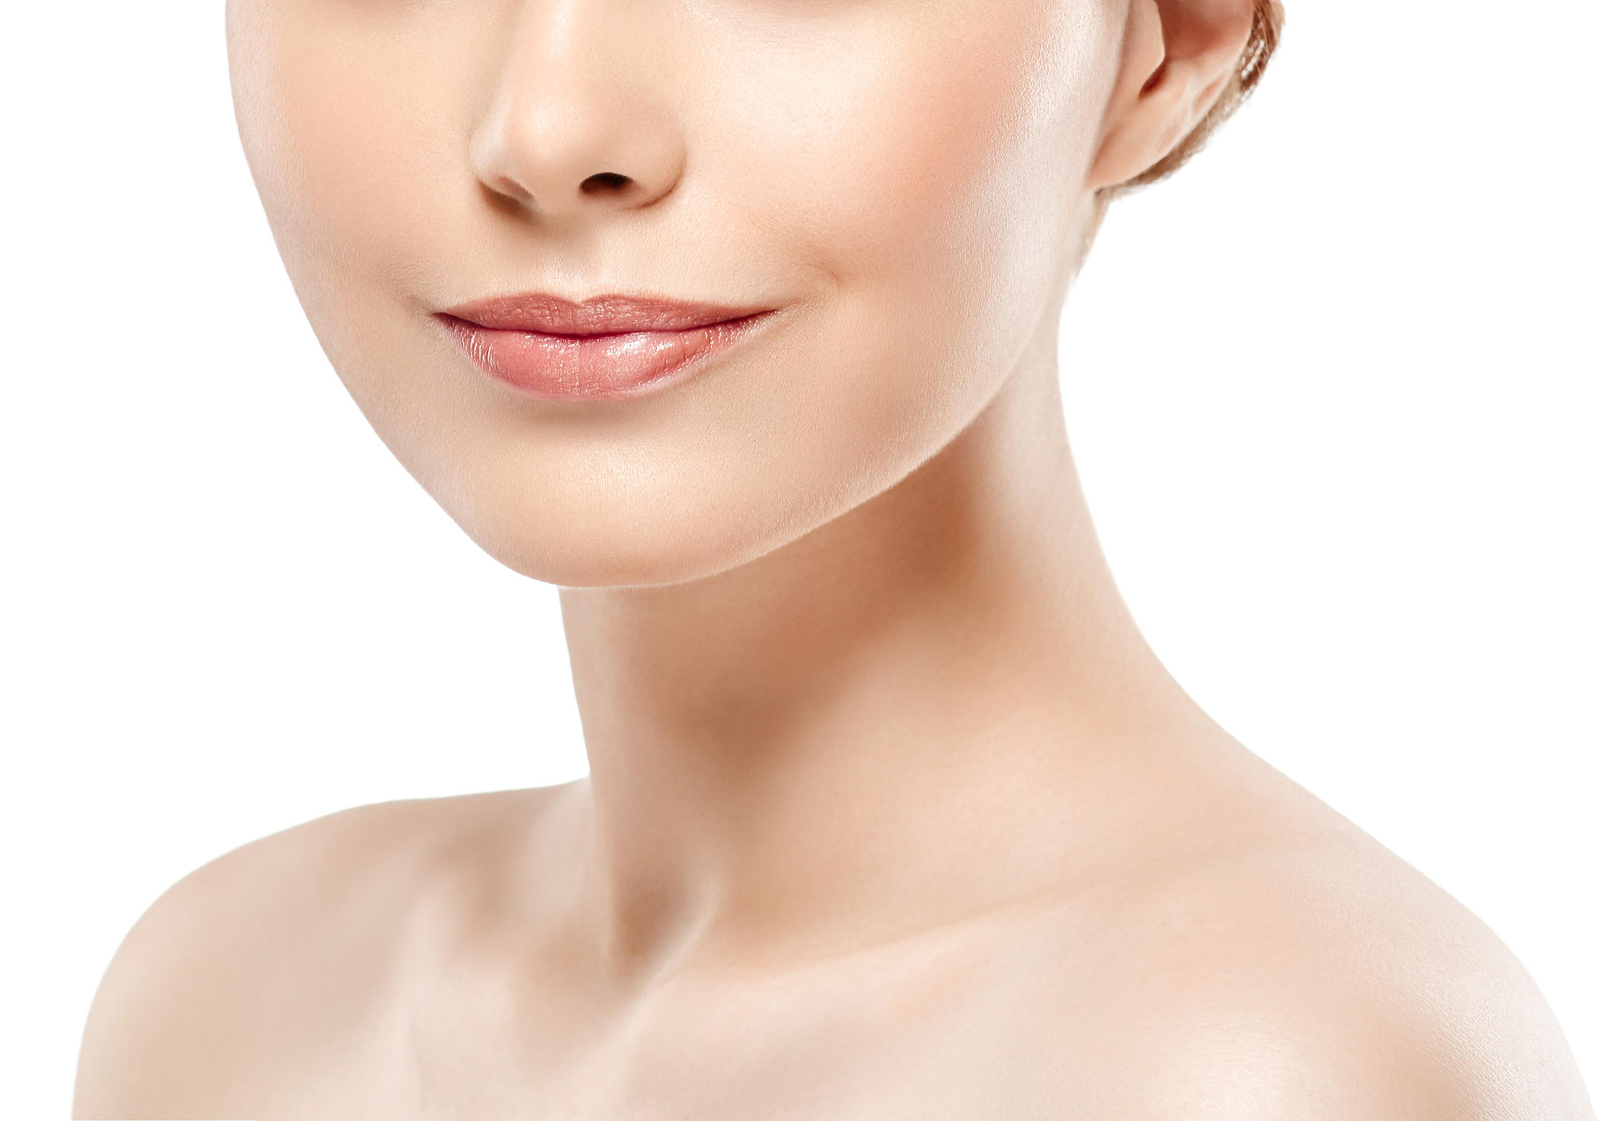 Dr. Azizzadeh Shares What You Need to Know Before Getting a Chin Augmentation